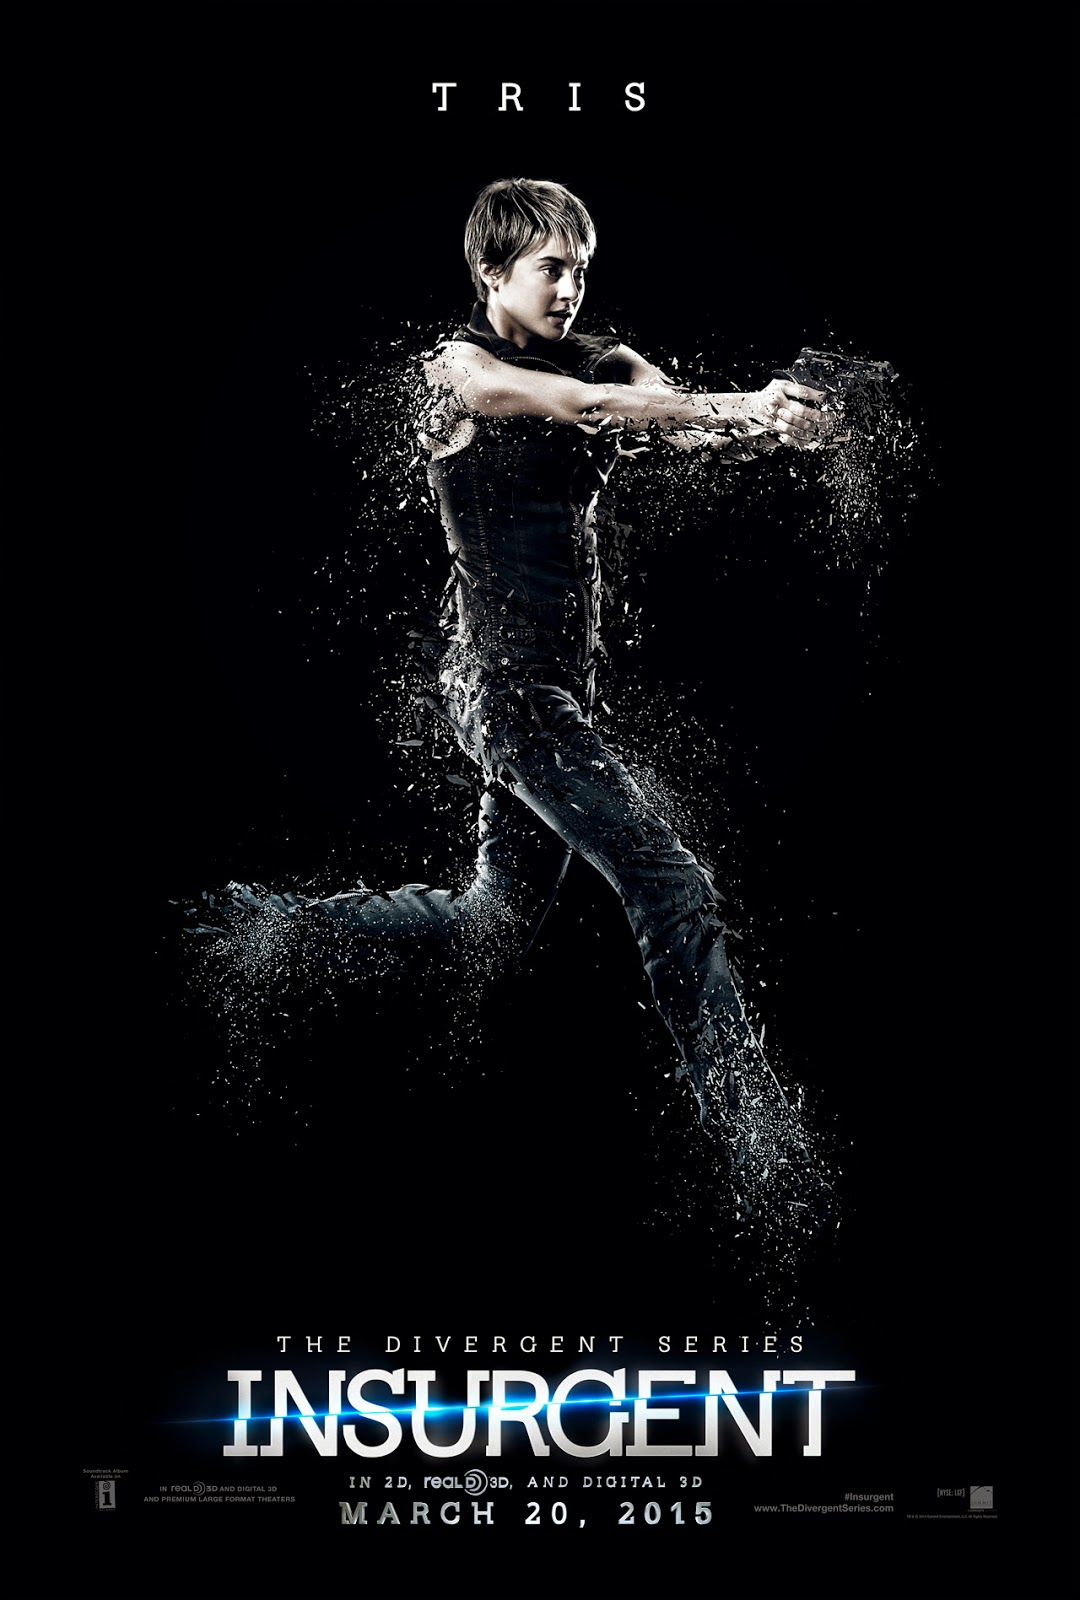 The Divergent Series: Insurgent (Tris)